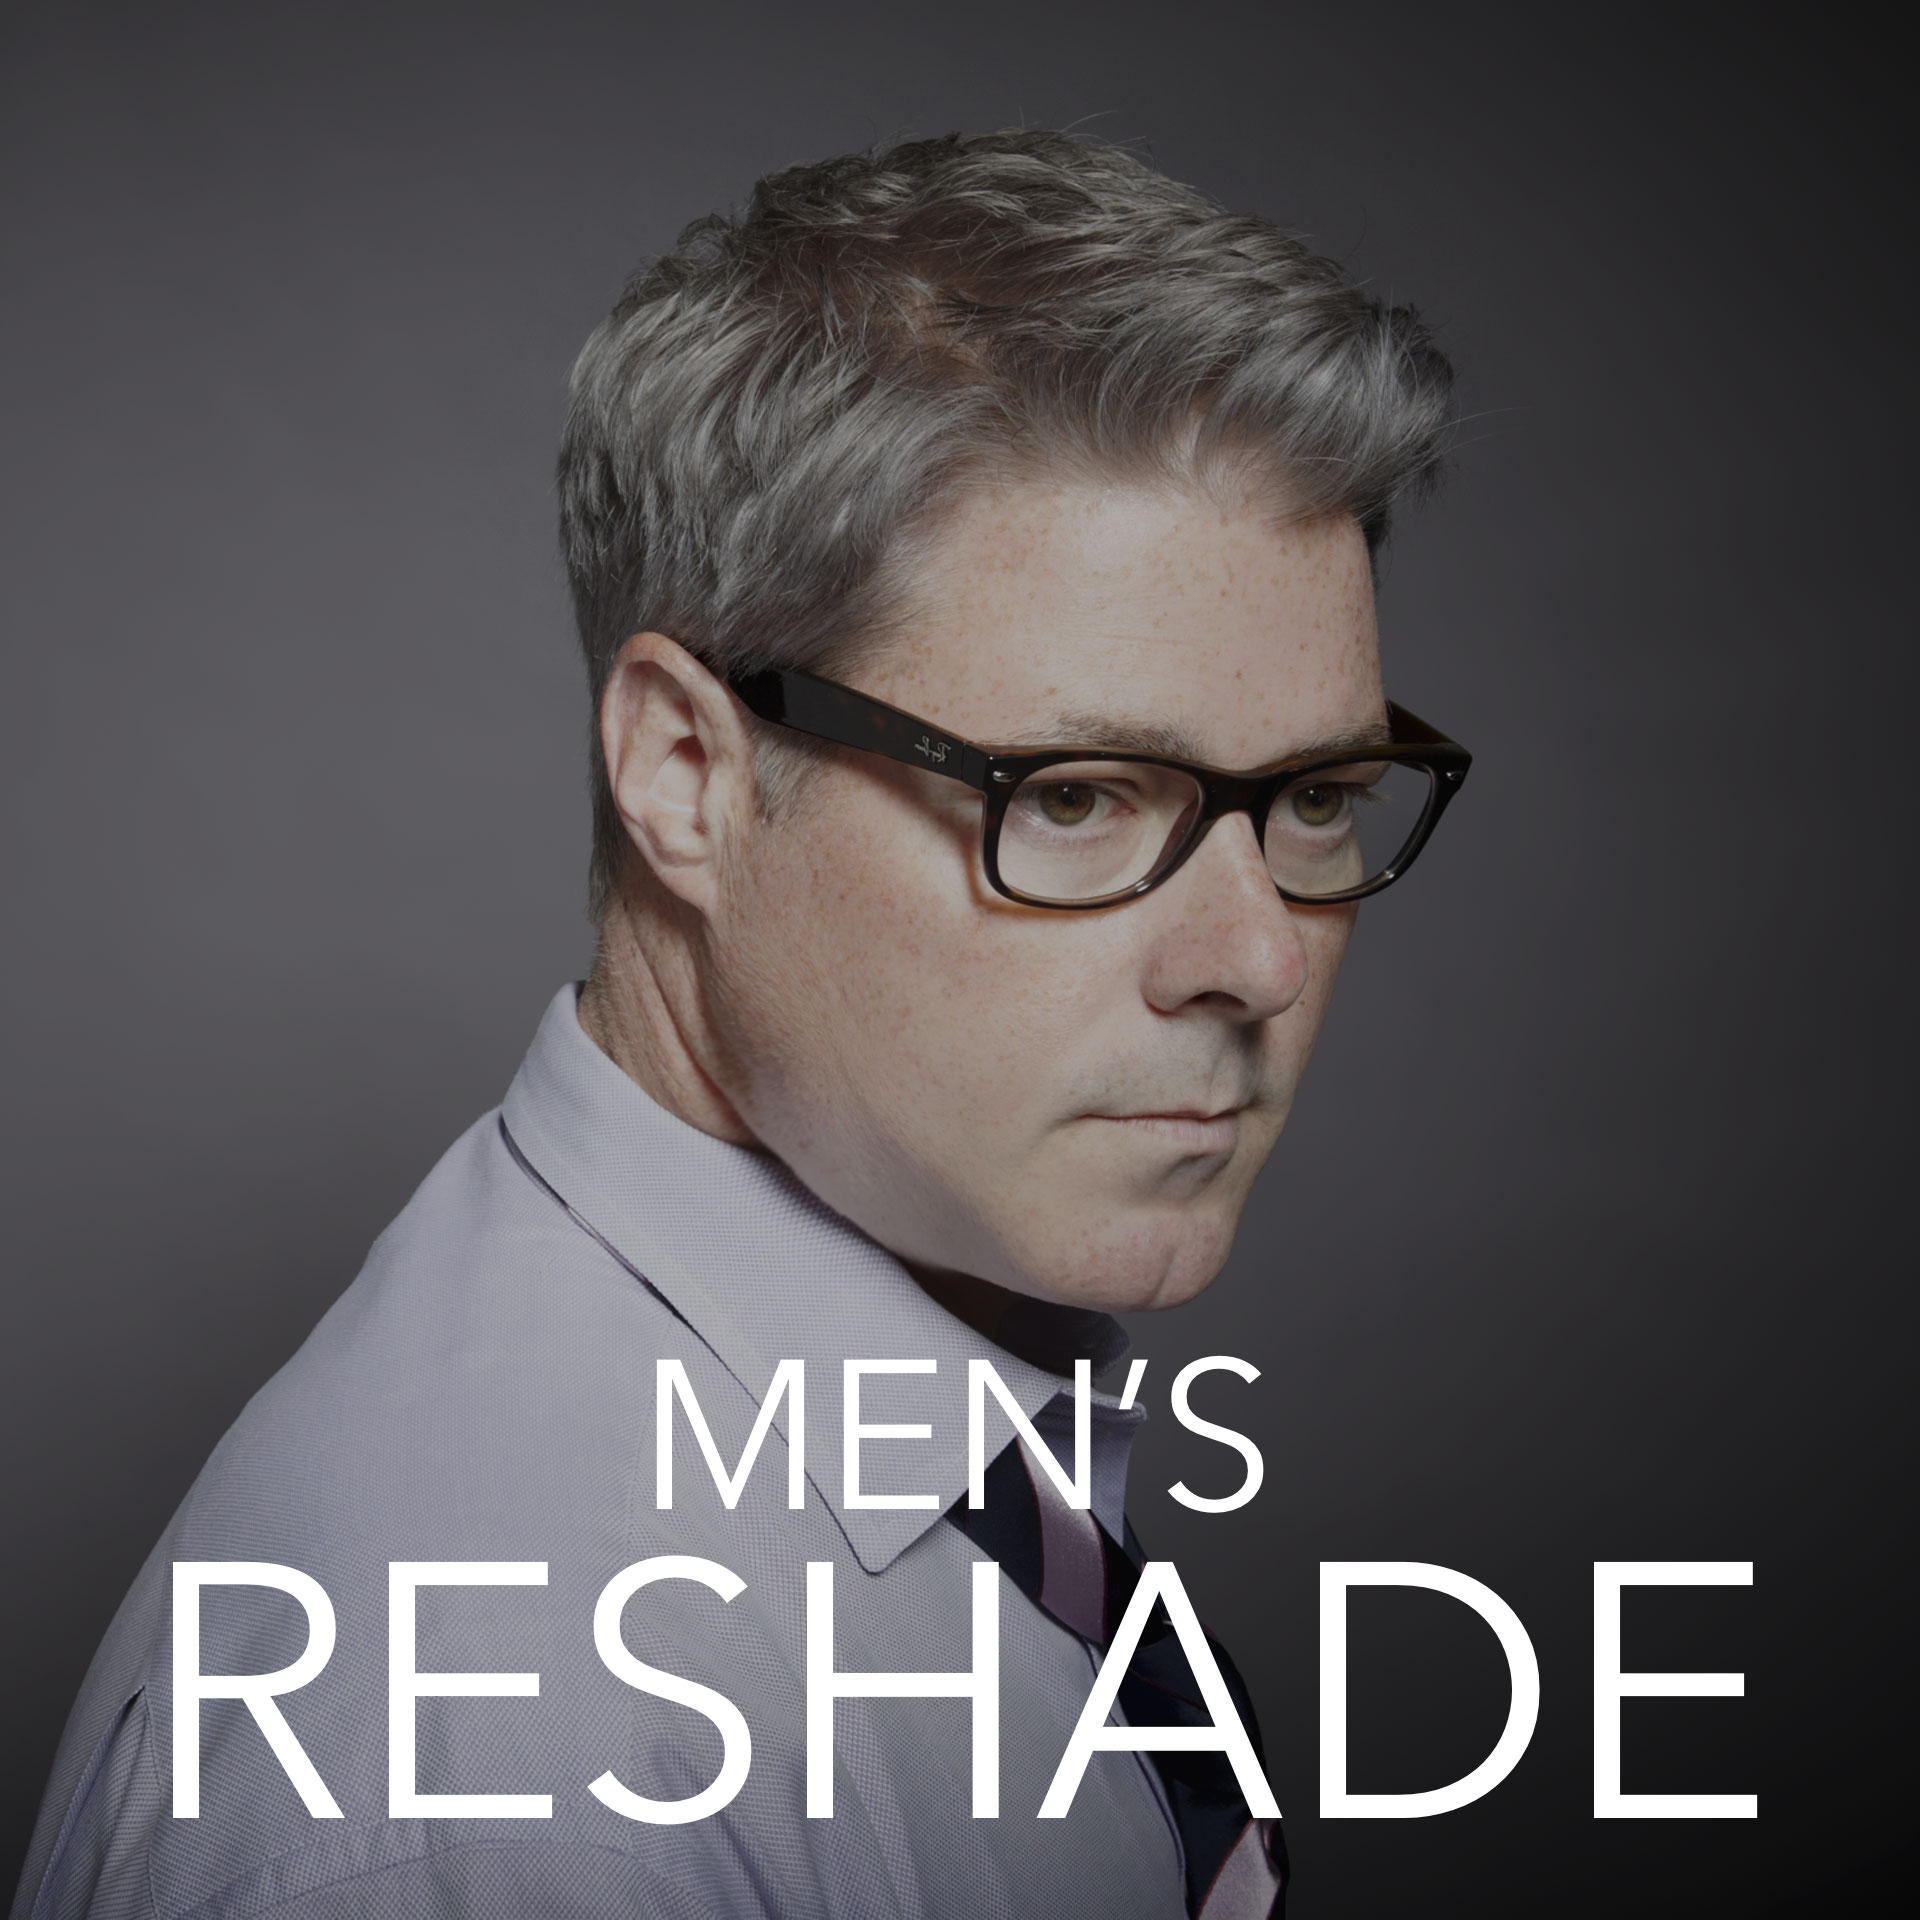 Men s reshade gray blending masculine shades aalam for Aalam salon dallas